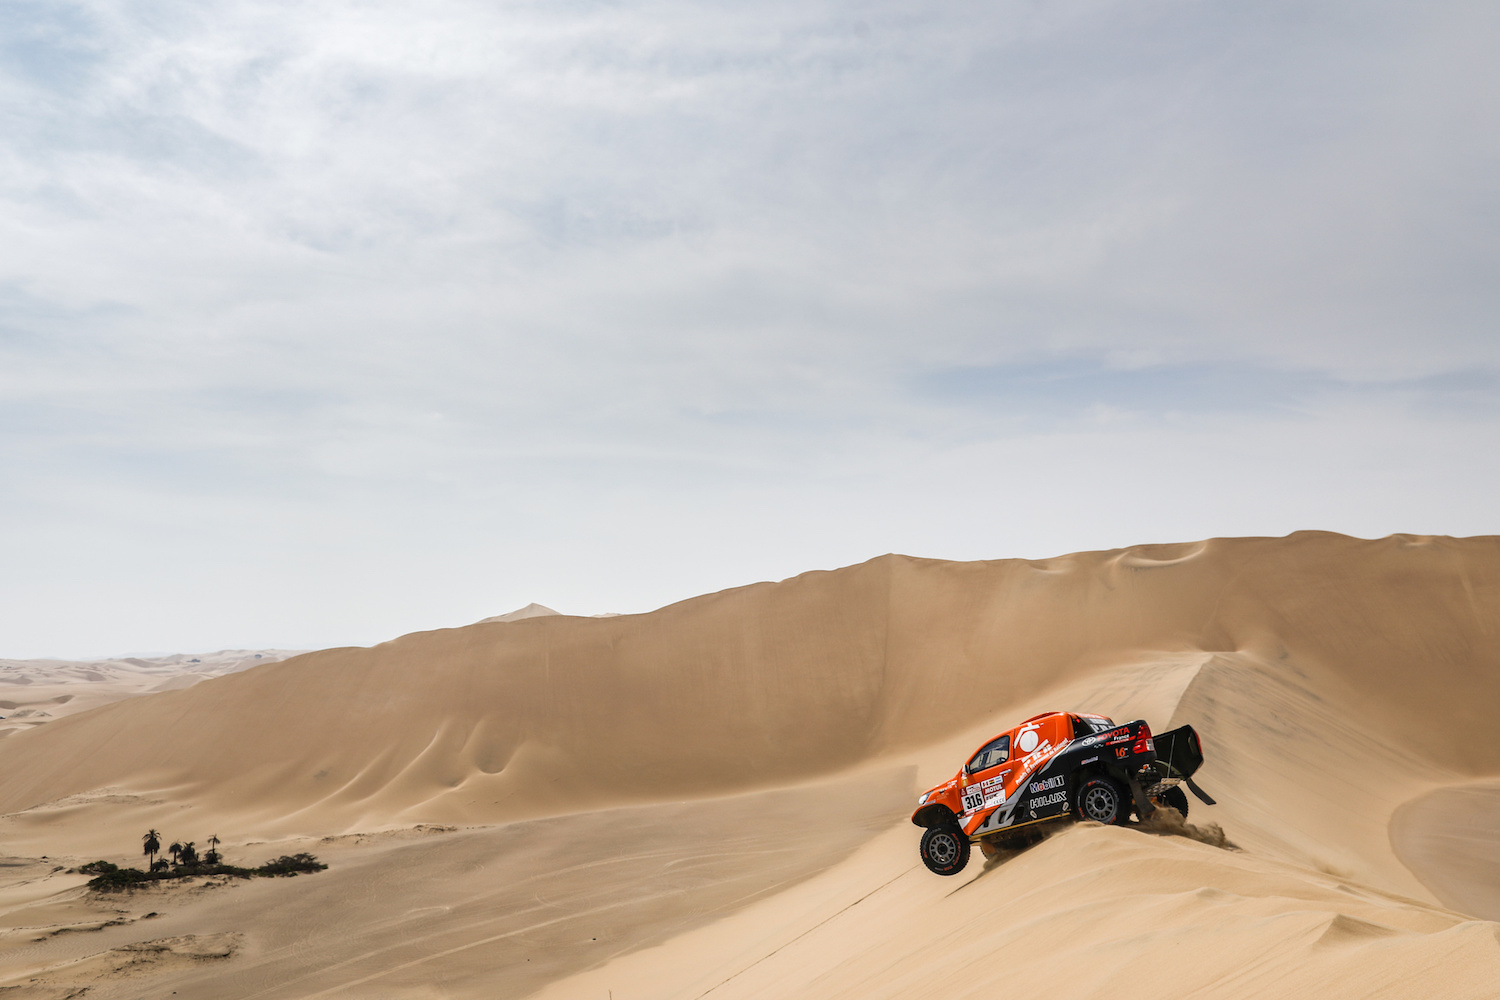 316 CHABOT RONAN (FRA) Legende, PILLOT GILLES (FRA) Legende, TOYOTA Hilux, auto, car, action during the Dakar 2018, Stage 1 Lima to Pisco, Peru, on january 6 - Photo Francois Flamand / DPPI